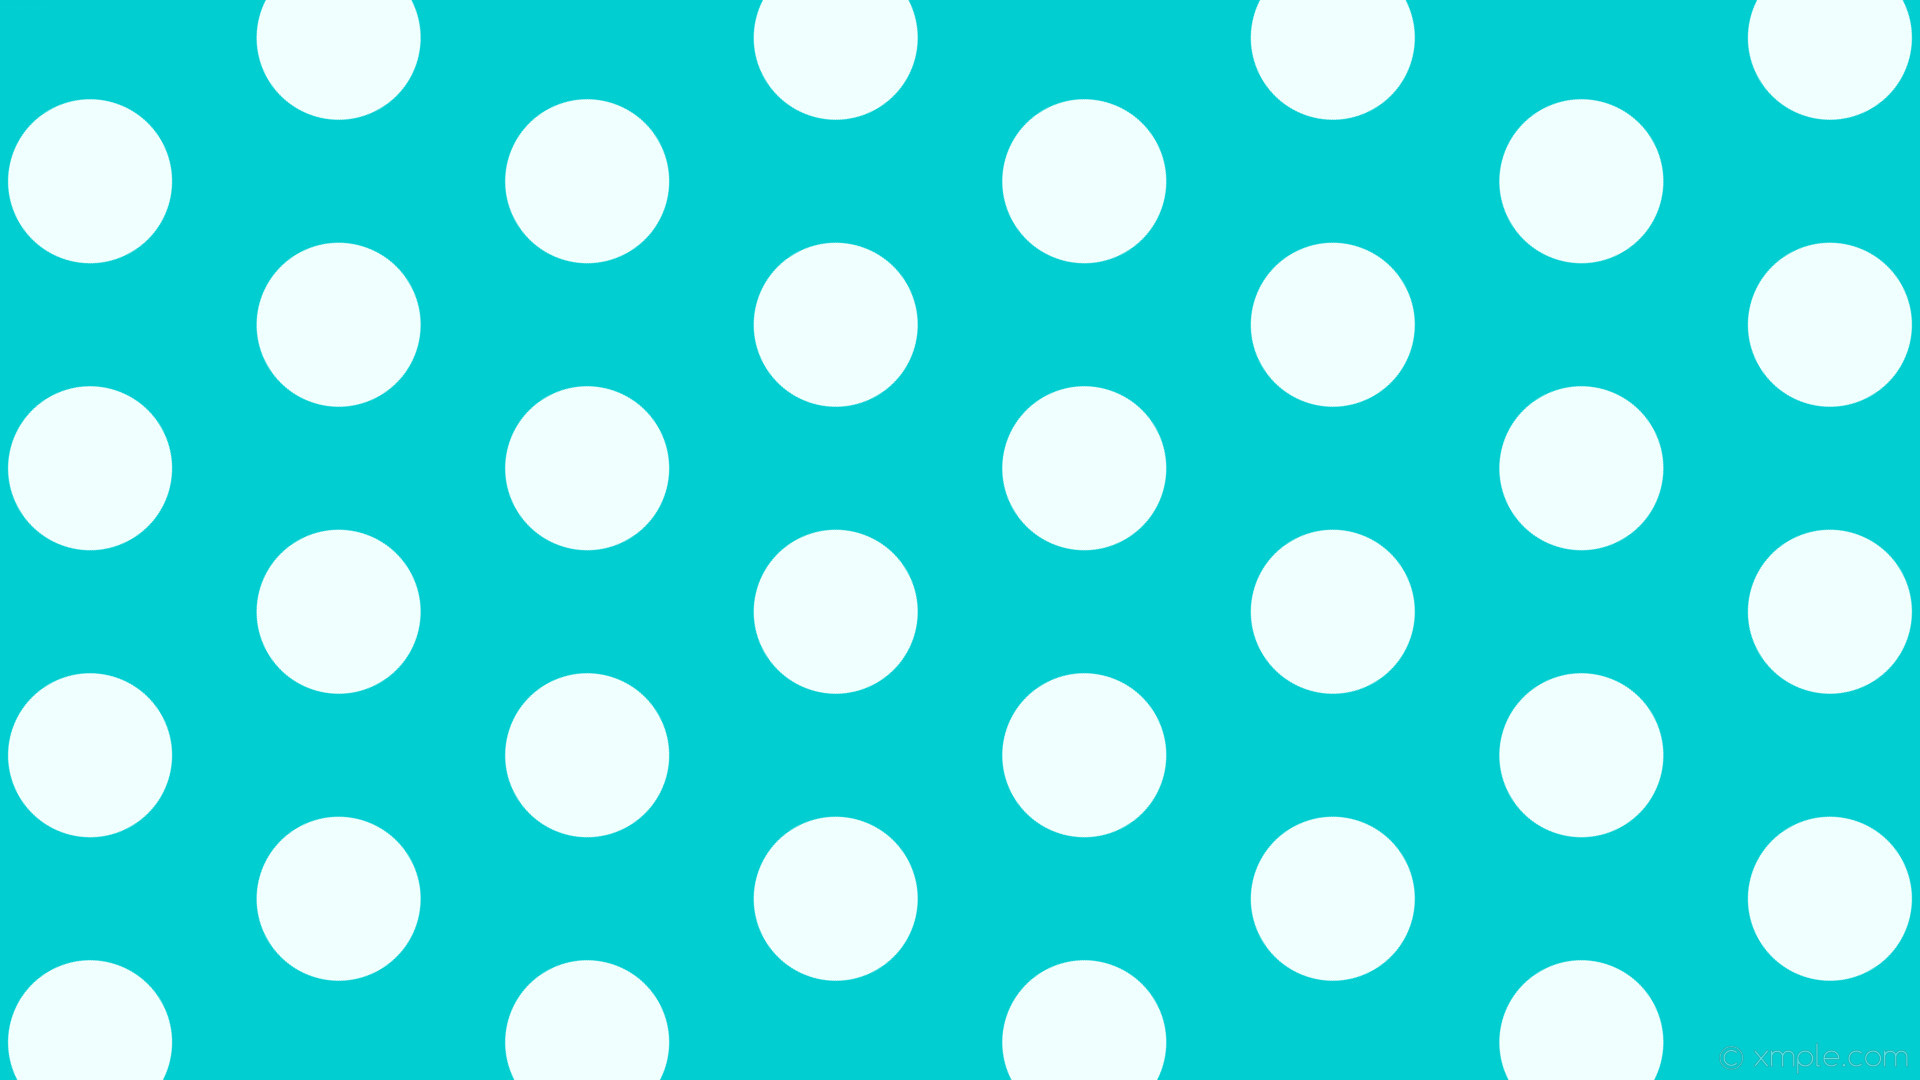 Polka Dot Wallpapers (47+ background pictures)